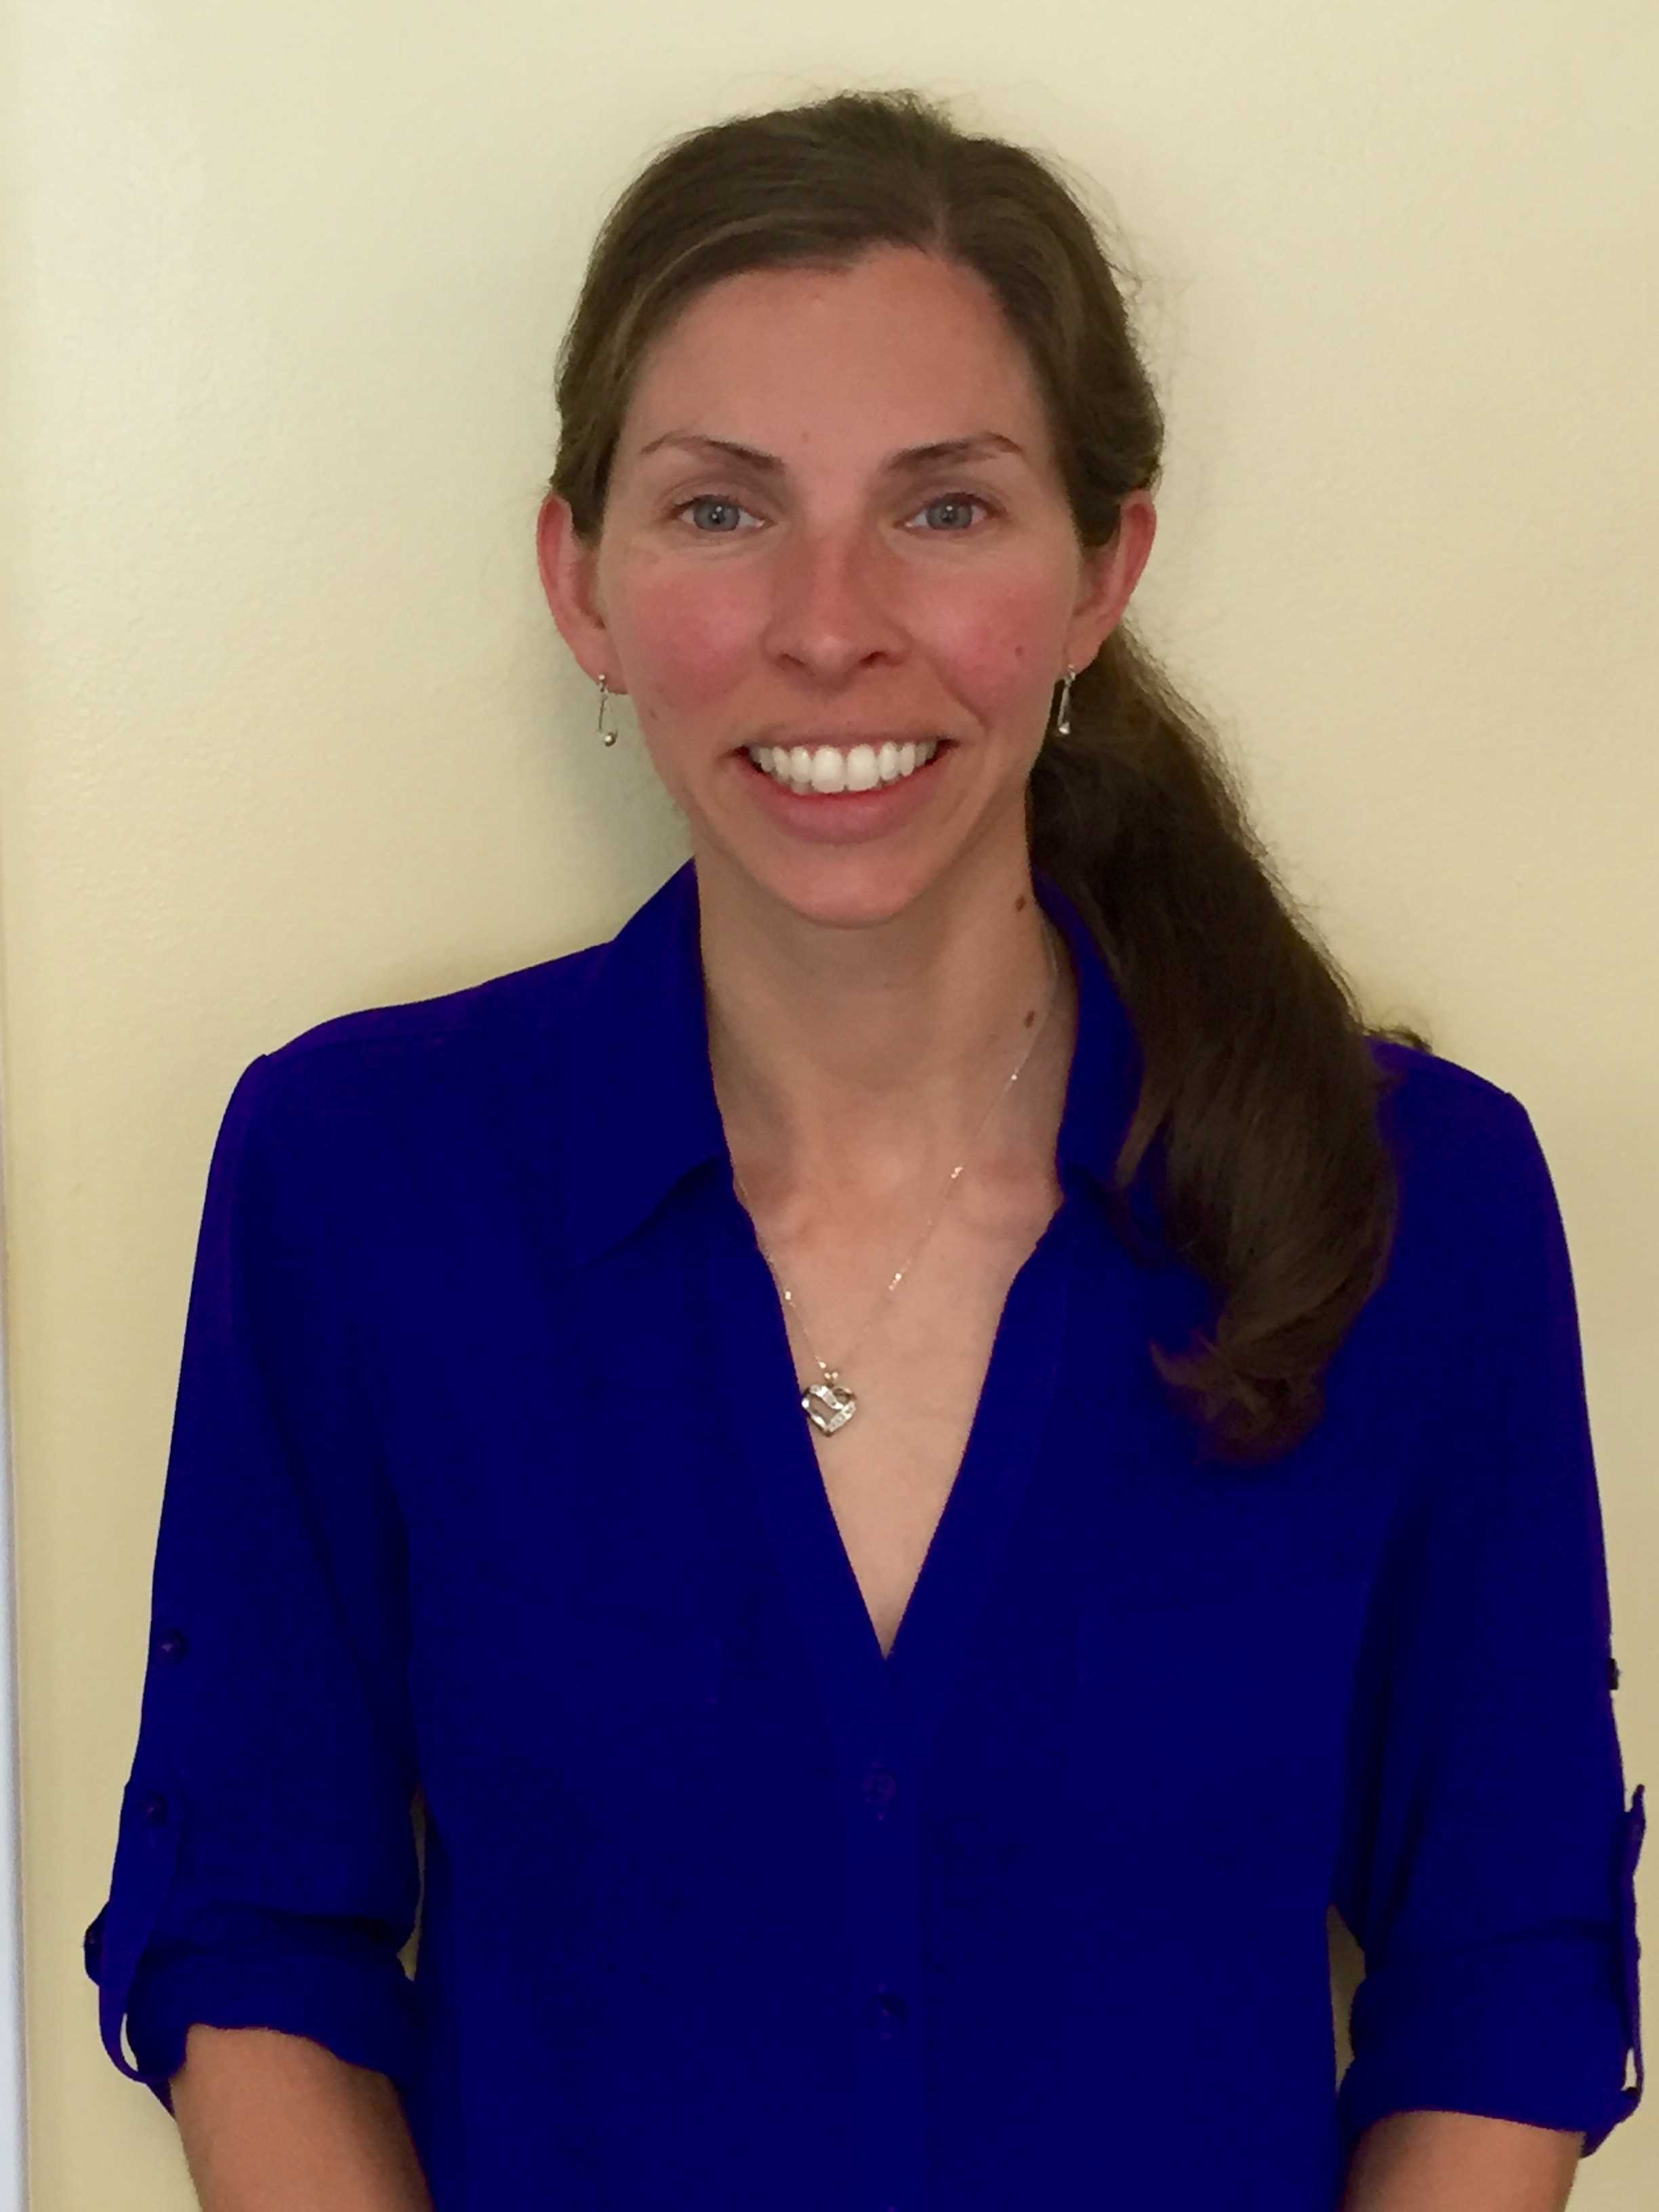 Congratulations to Danielle Knippenberg, PT, MPT, GCS, PRPC on Earning Certification!